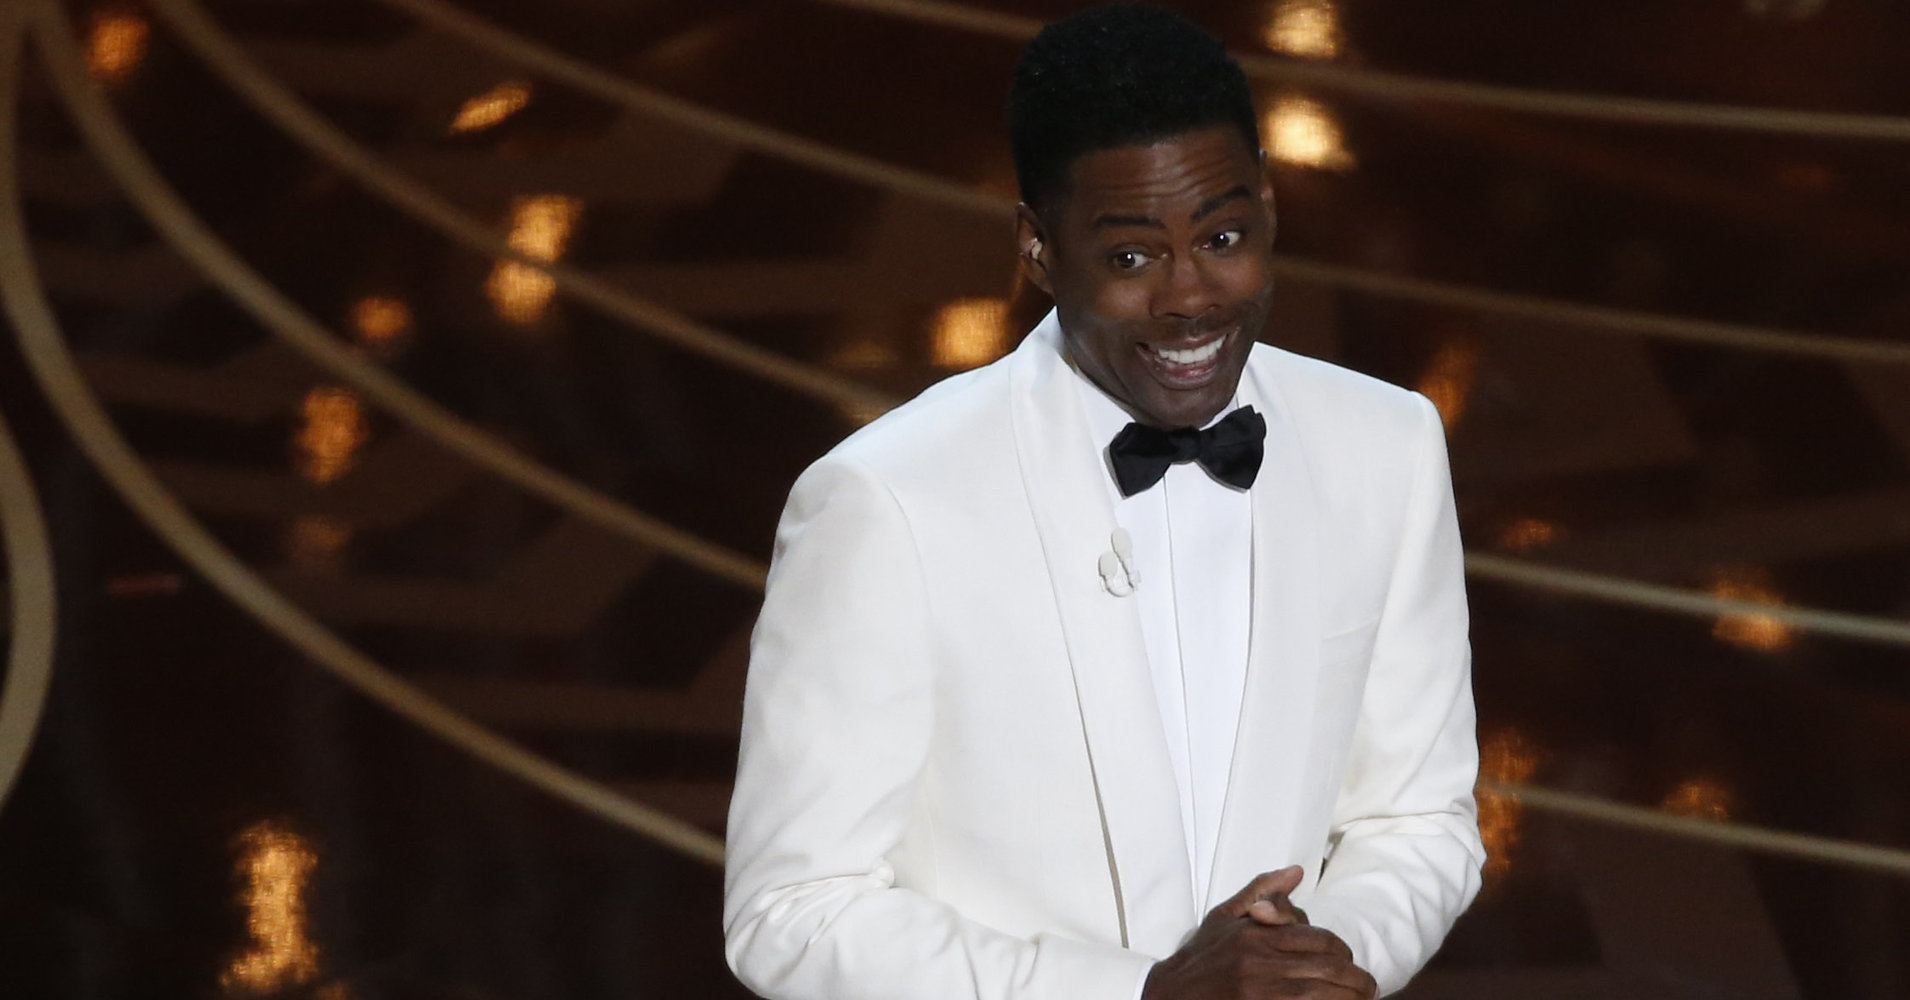 15 Funny And Heartfelt Parenting Quotes From Chris Rock